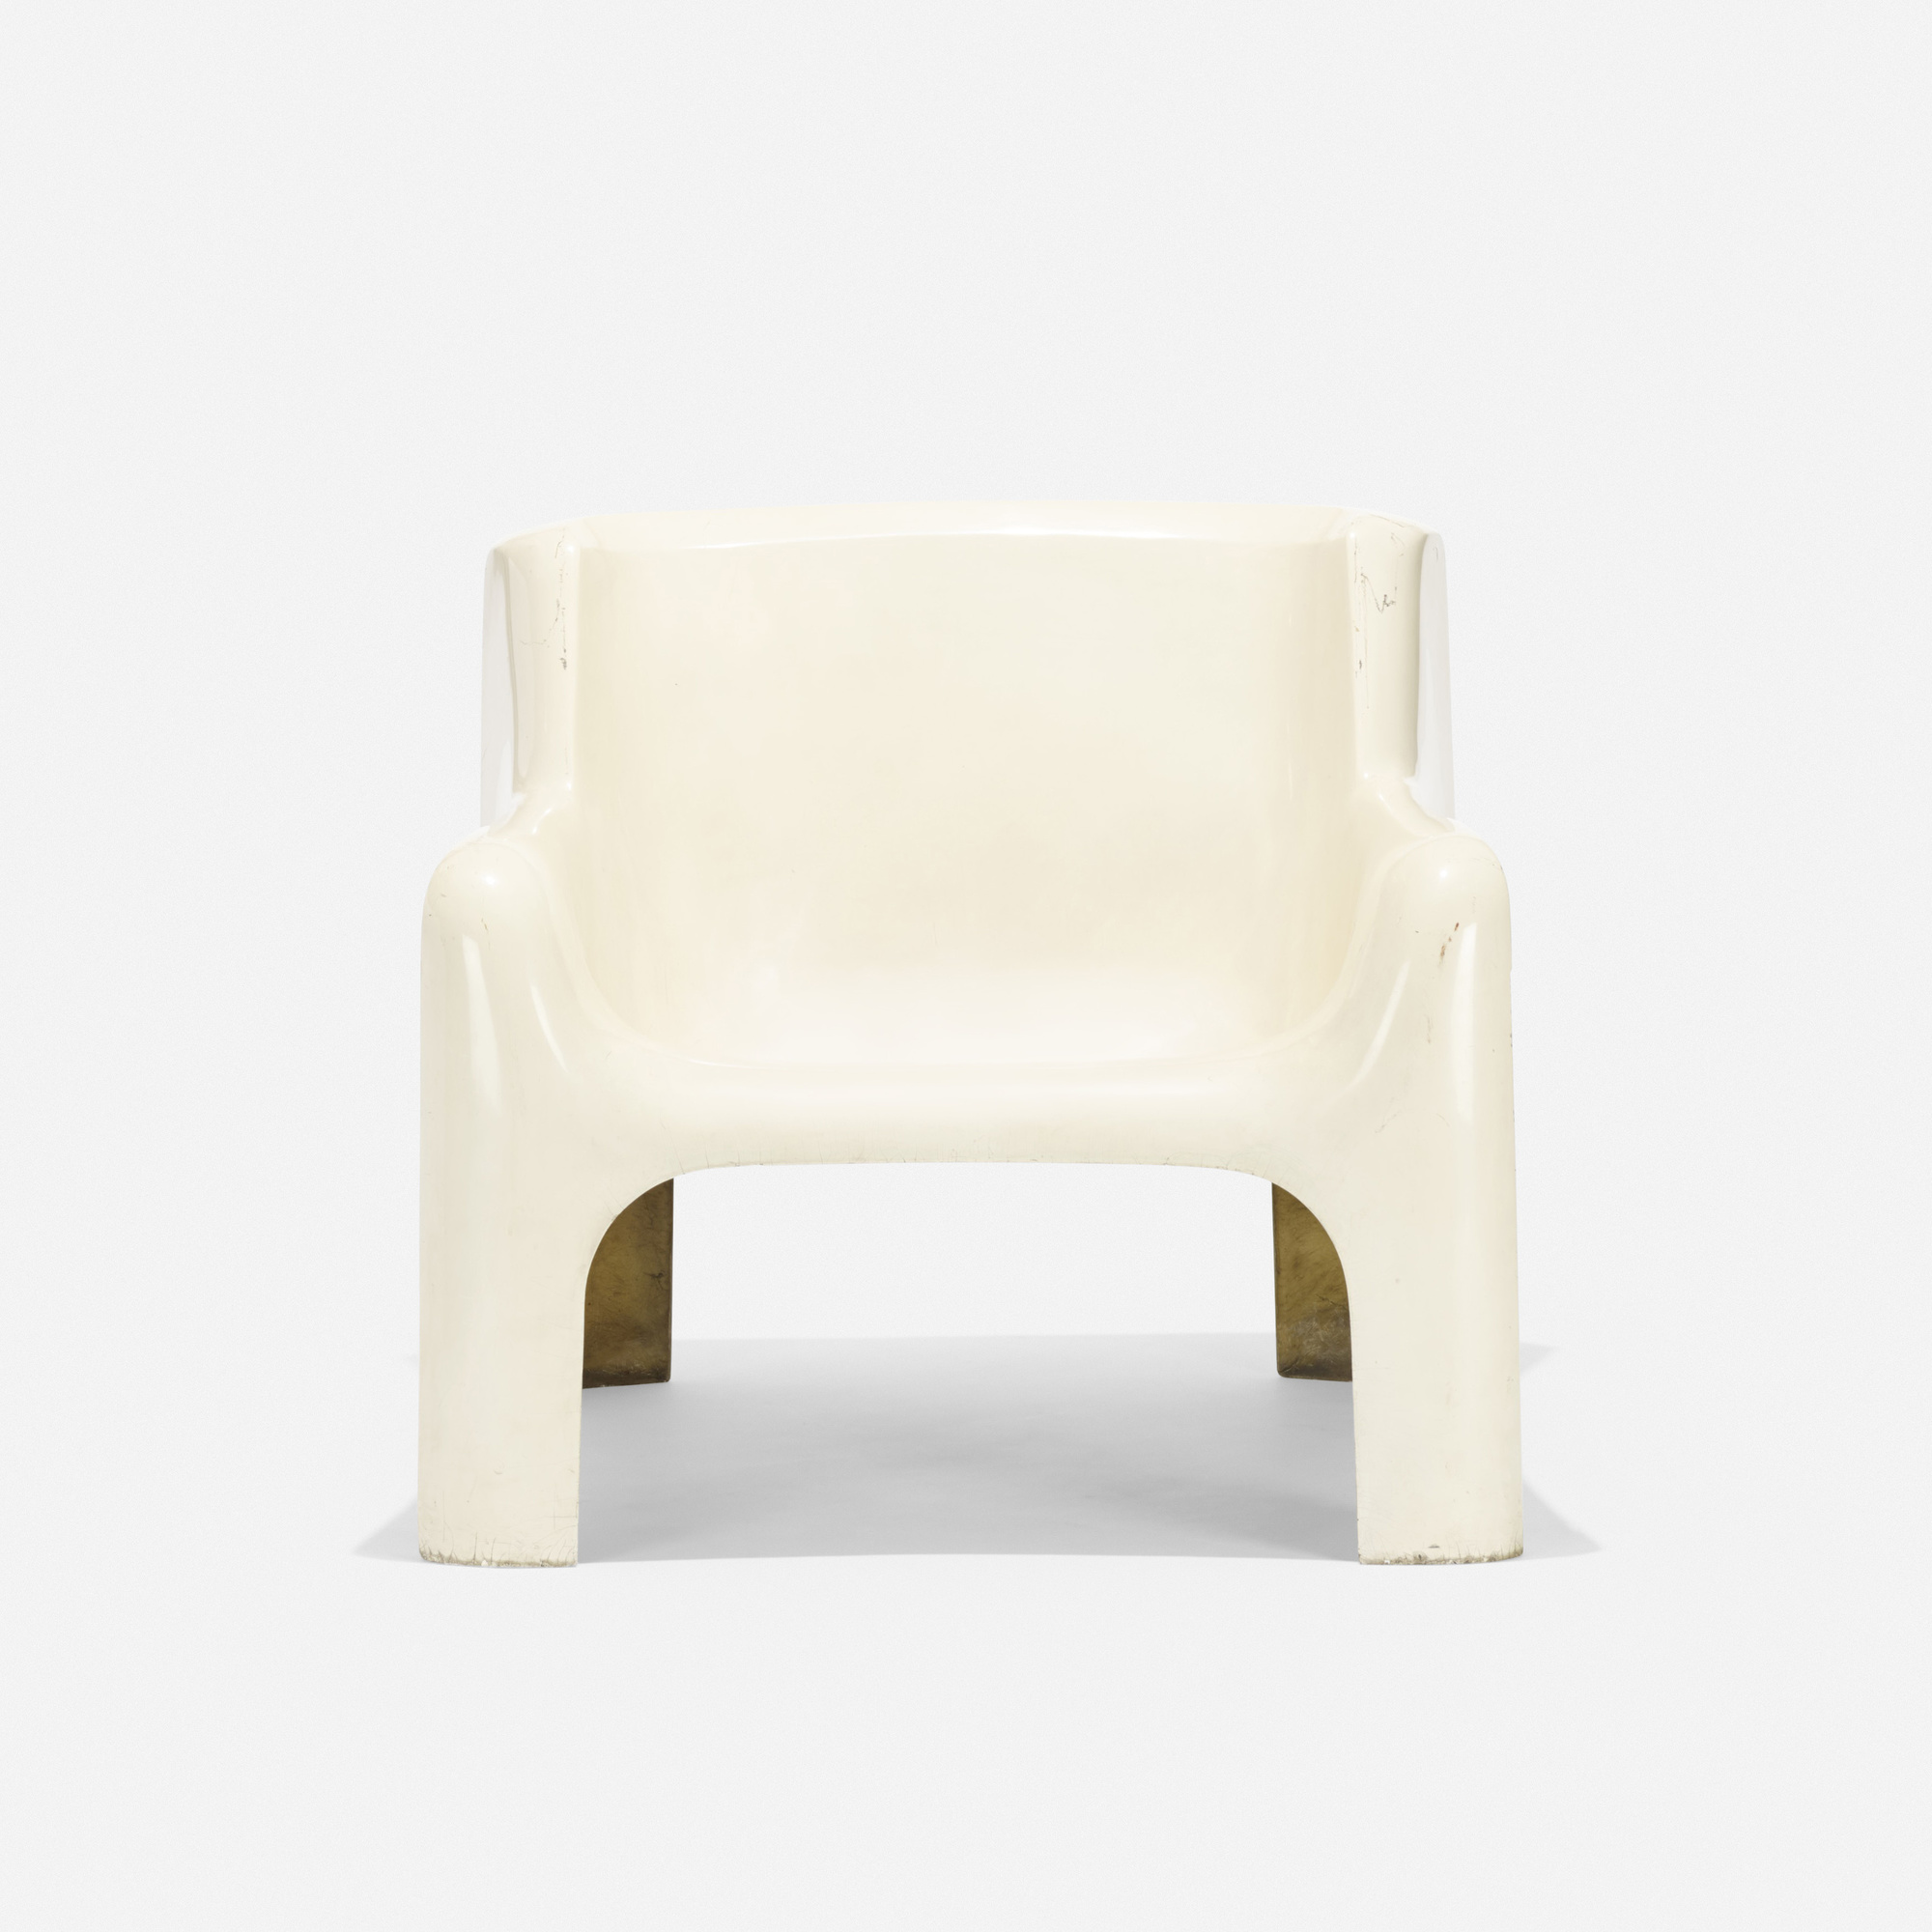 199: Carlo Bartoli / Gaia lounge chair (2 of 2)